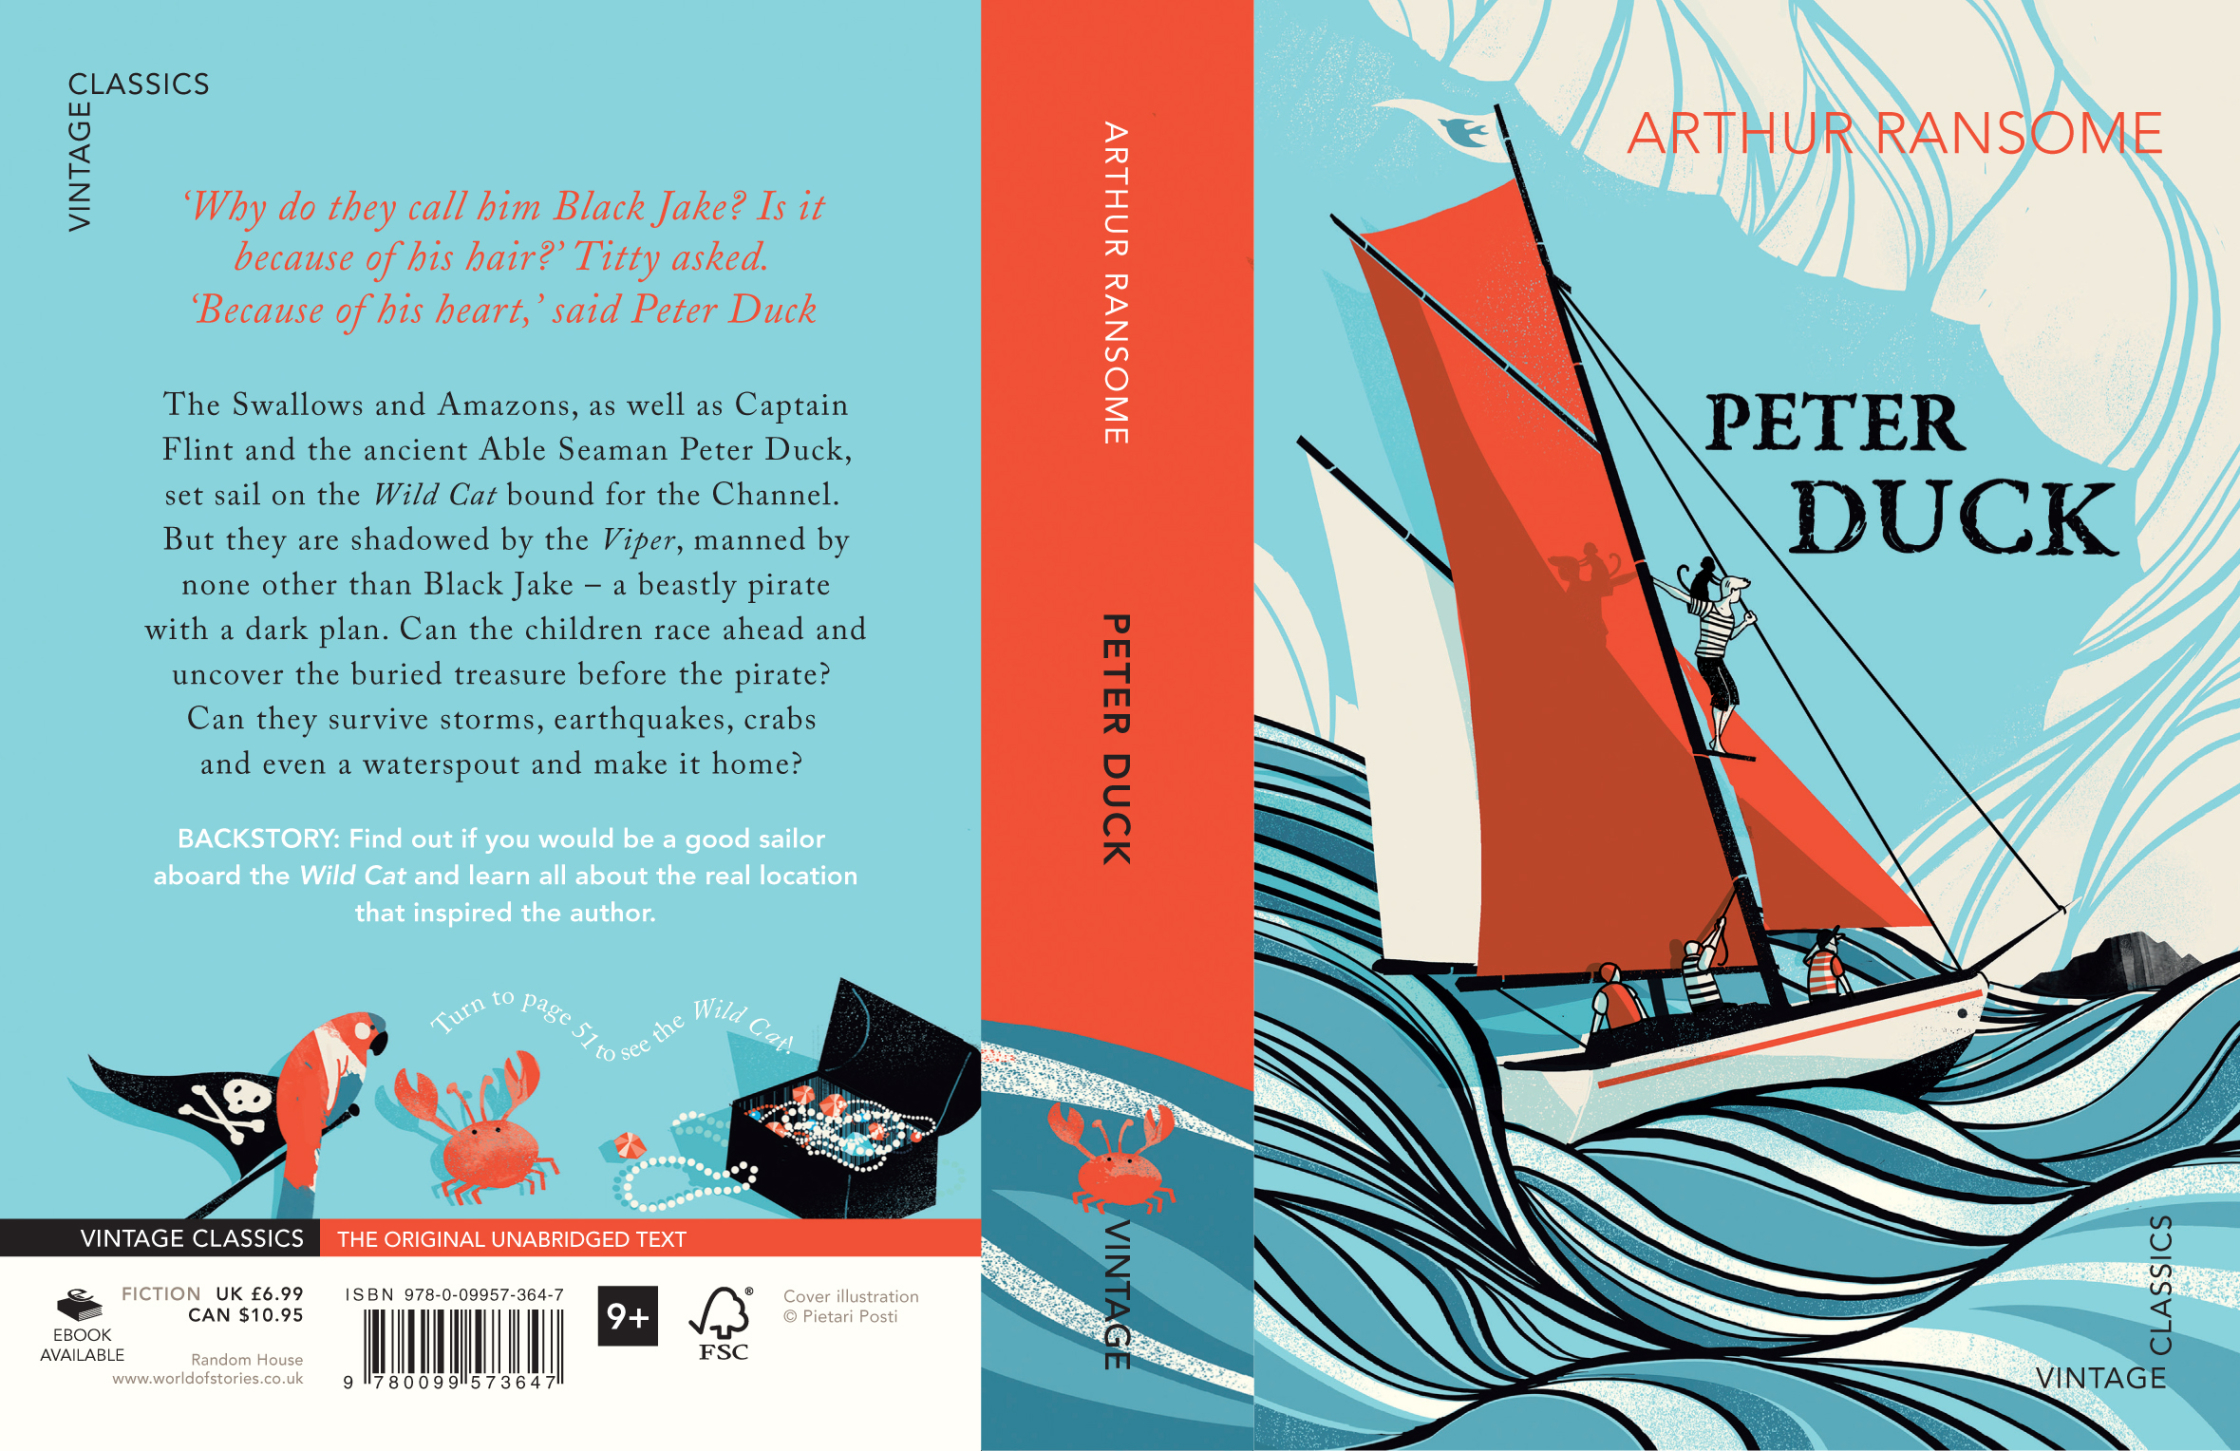 Arthur Ransome - Peter Duck Cover